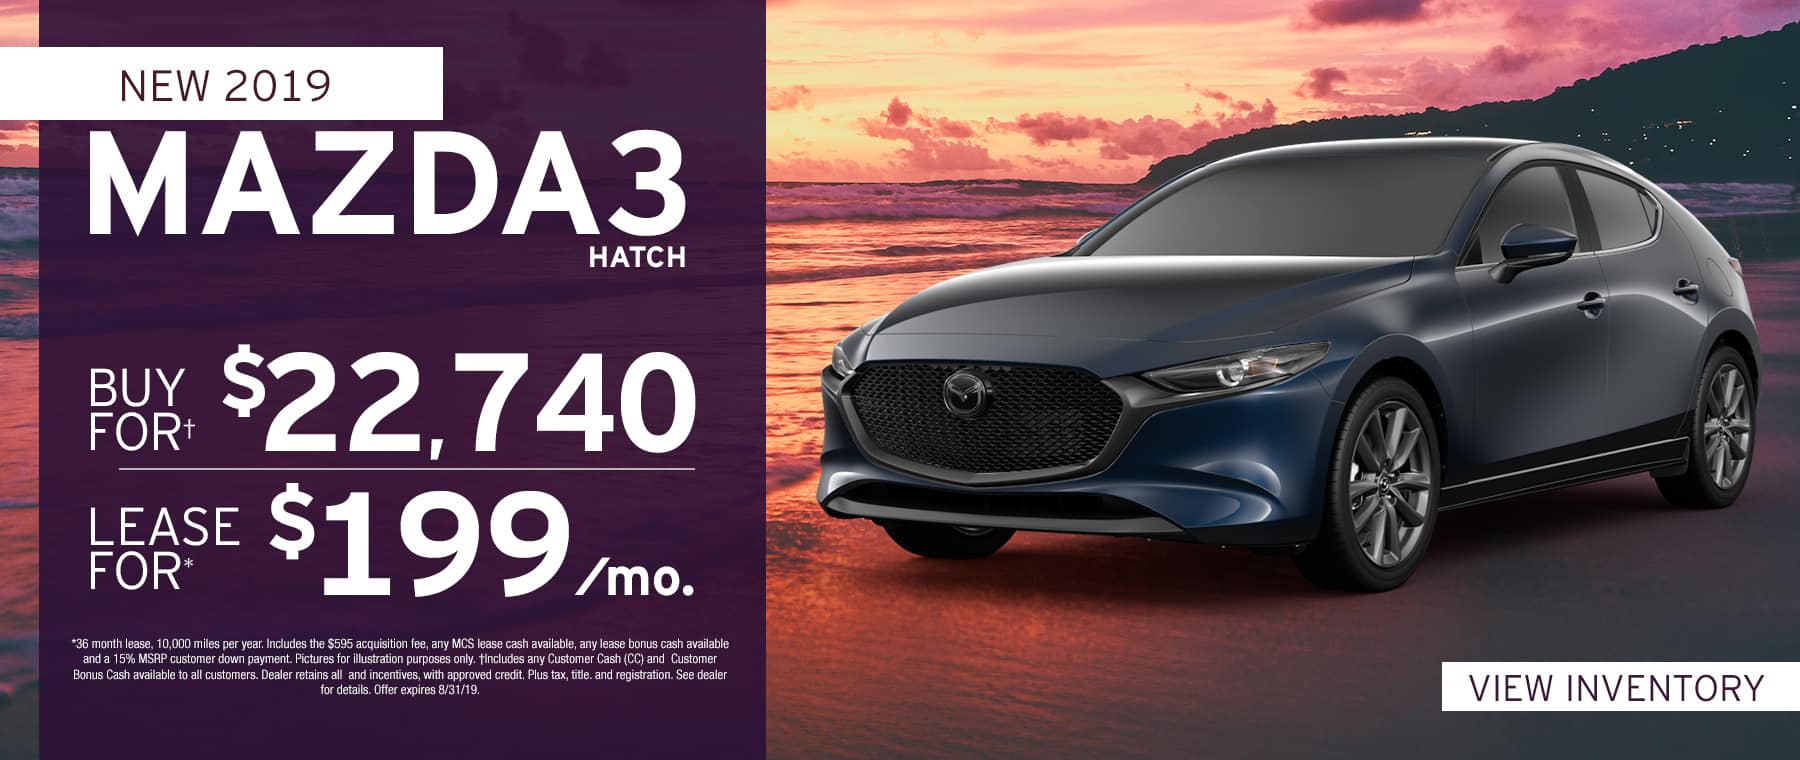 2019 Mazda3 Hatch$199 Per Month OR Buy For $22740